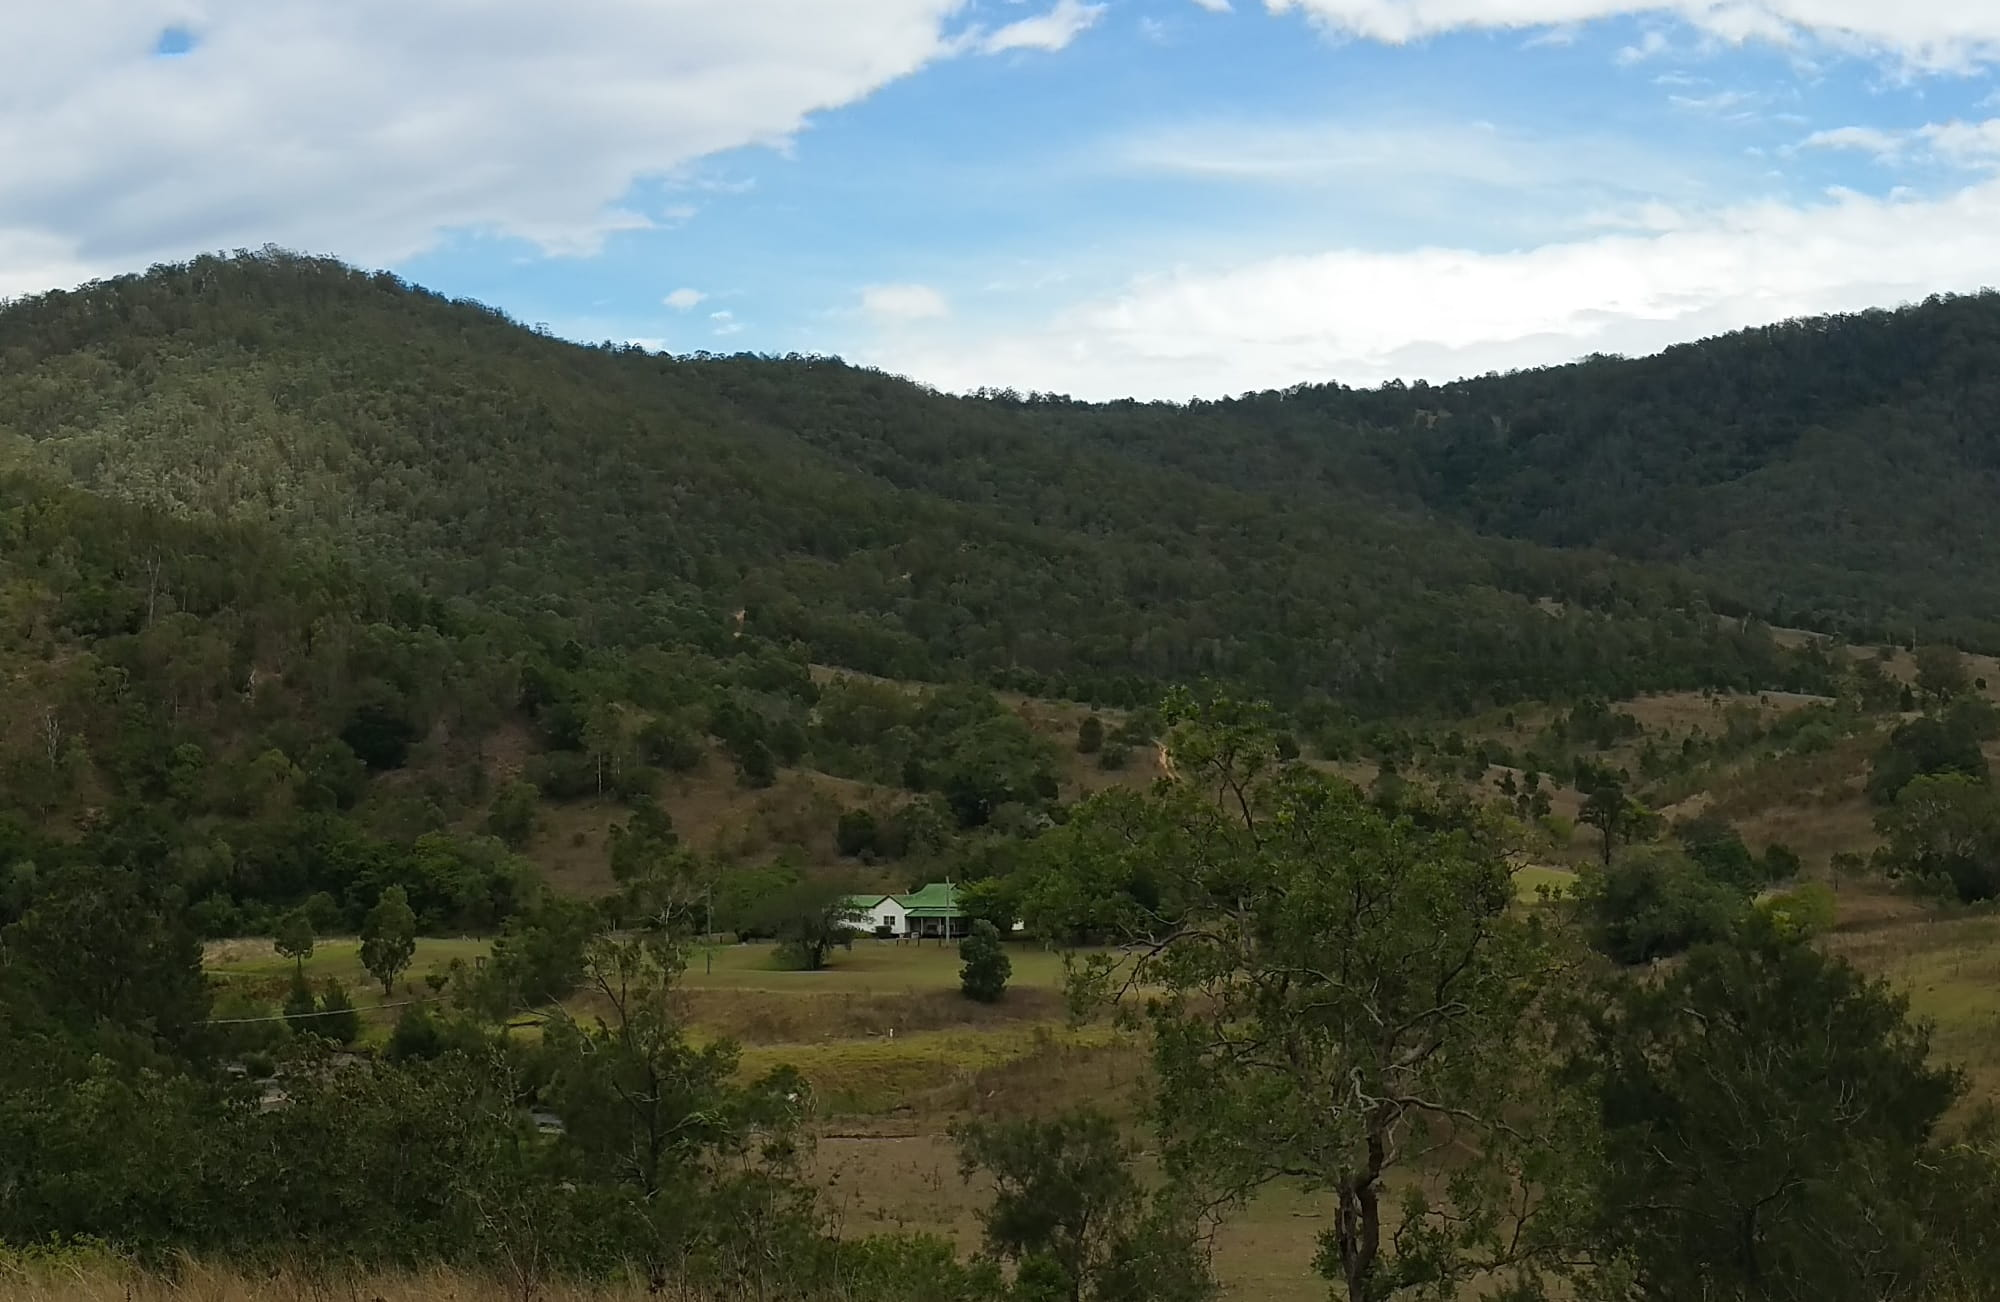 Karamea Homestead, Curracabundi National Park. Photo: Trudy